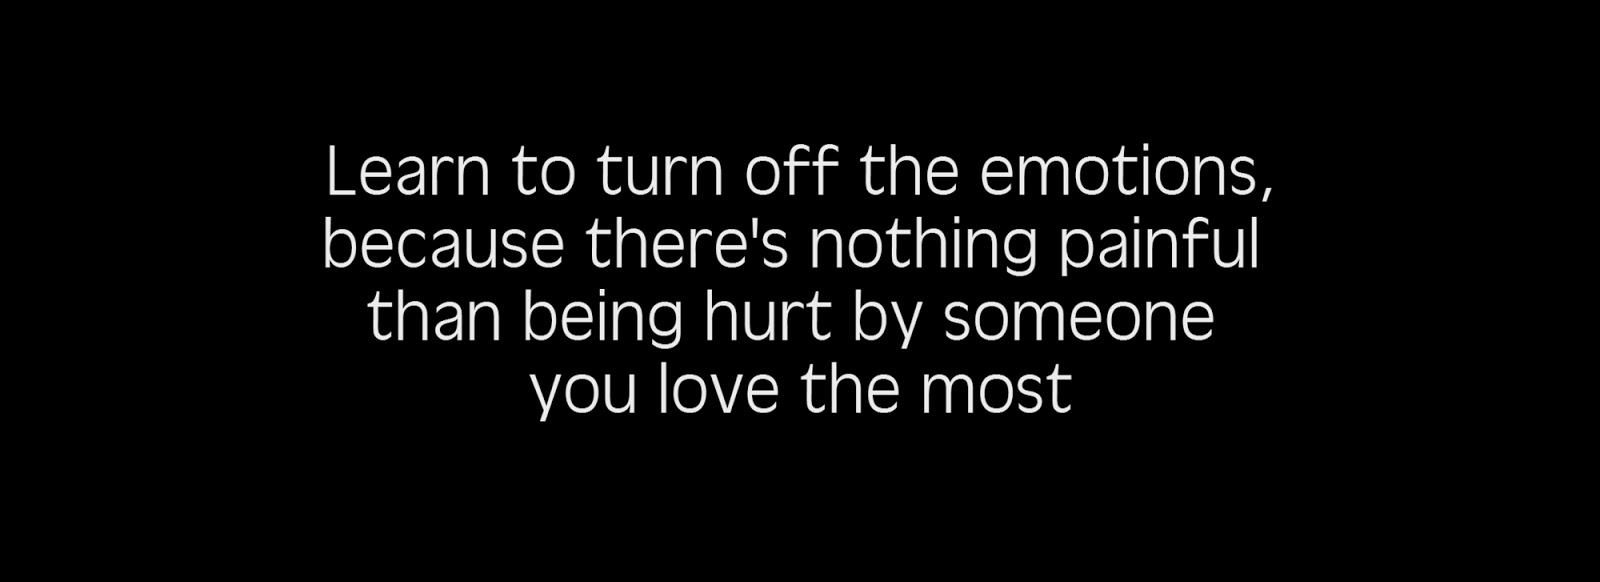 Learn to turn off the emotions, because there's nothing painful than being hurt by someone you love the most